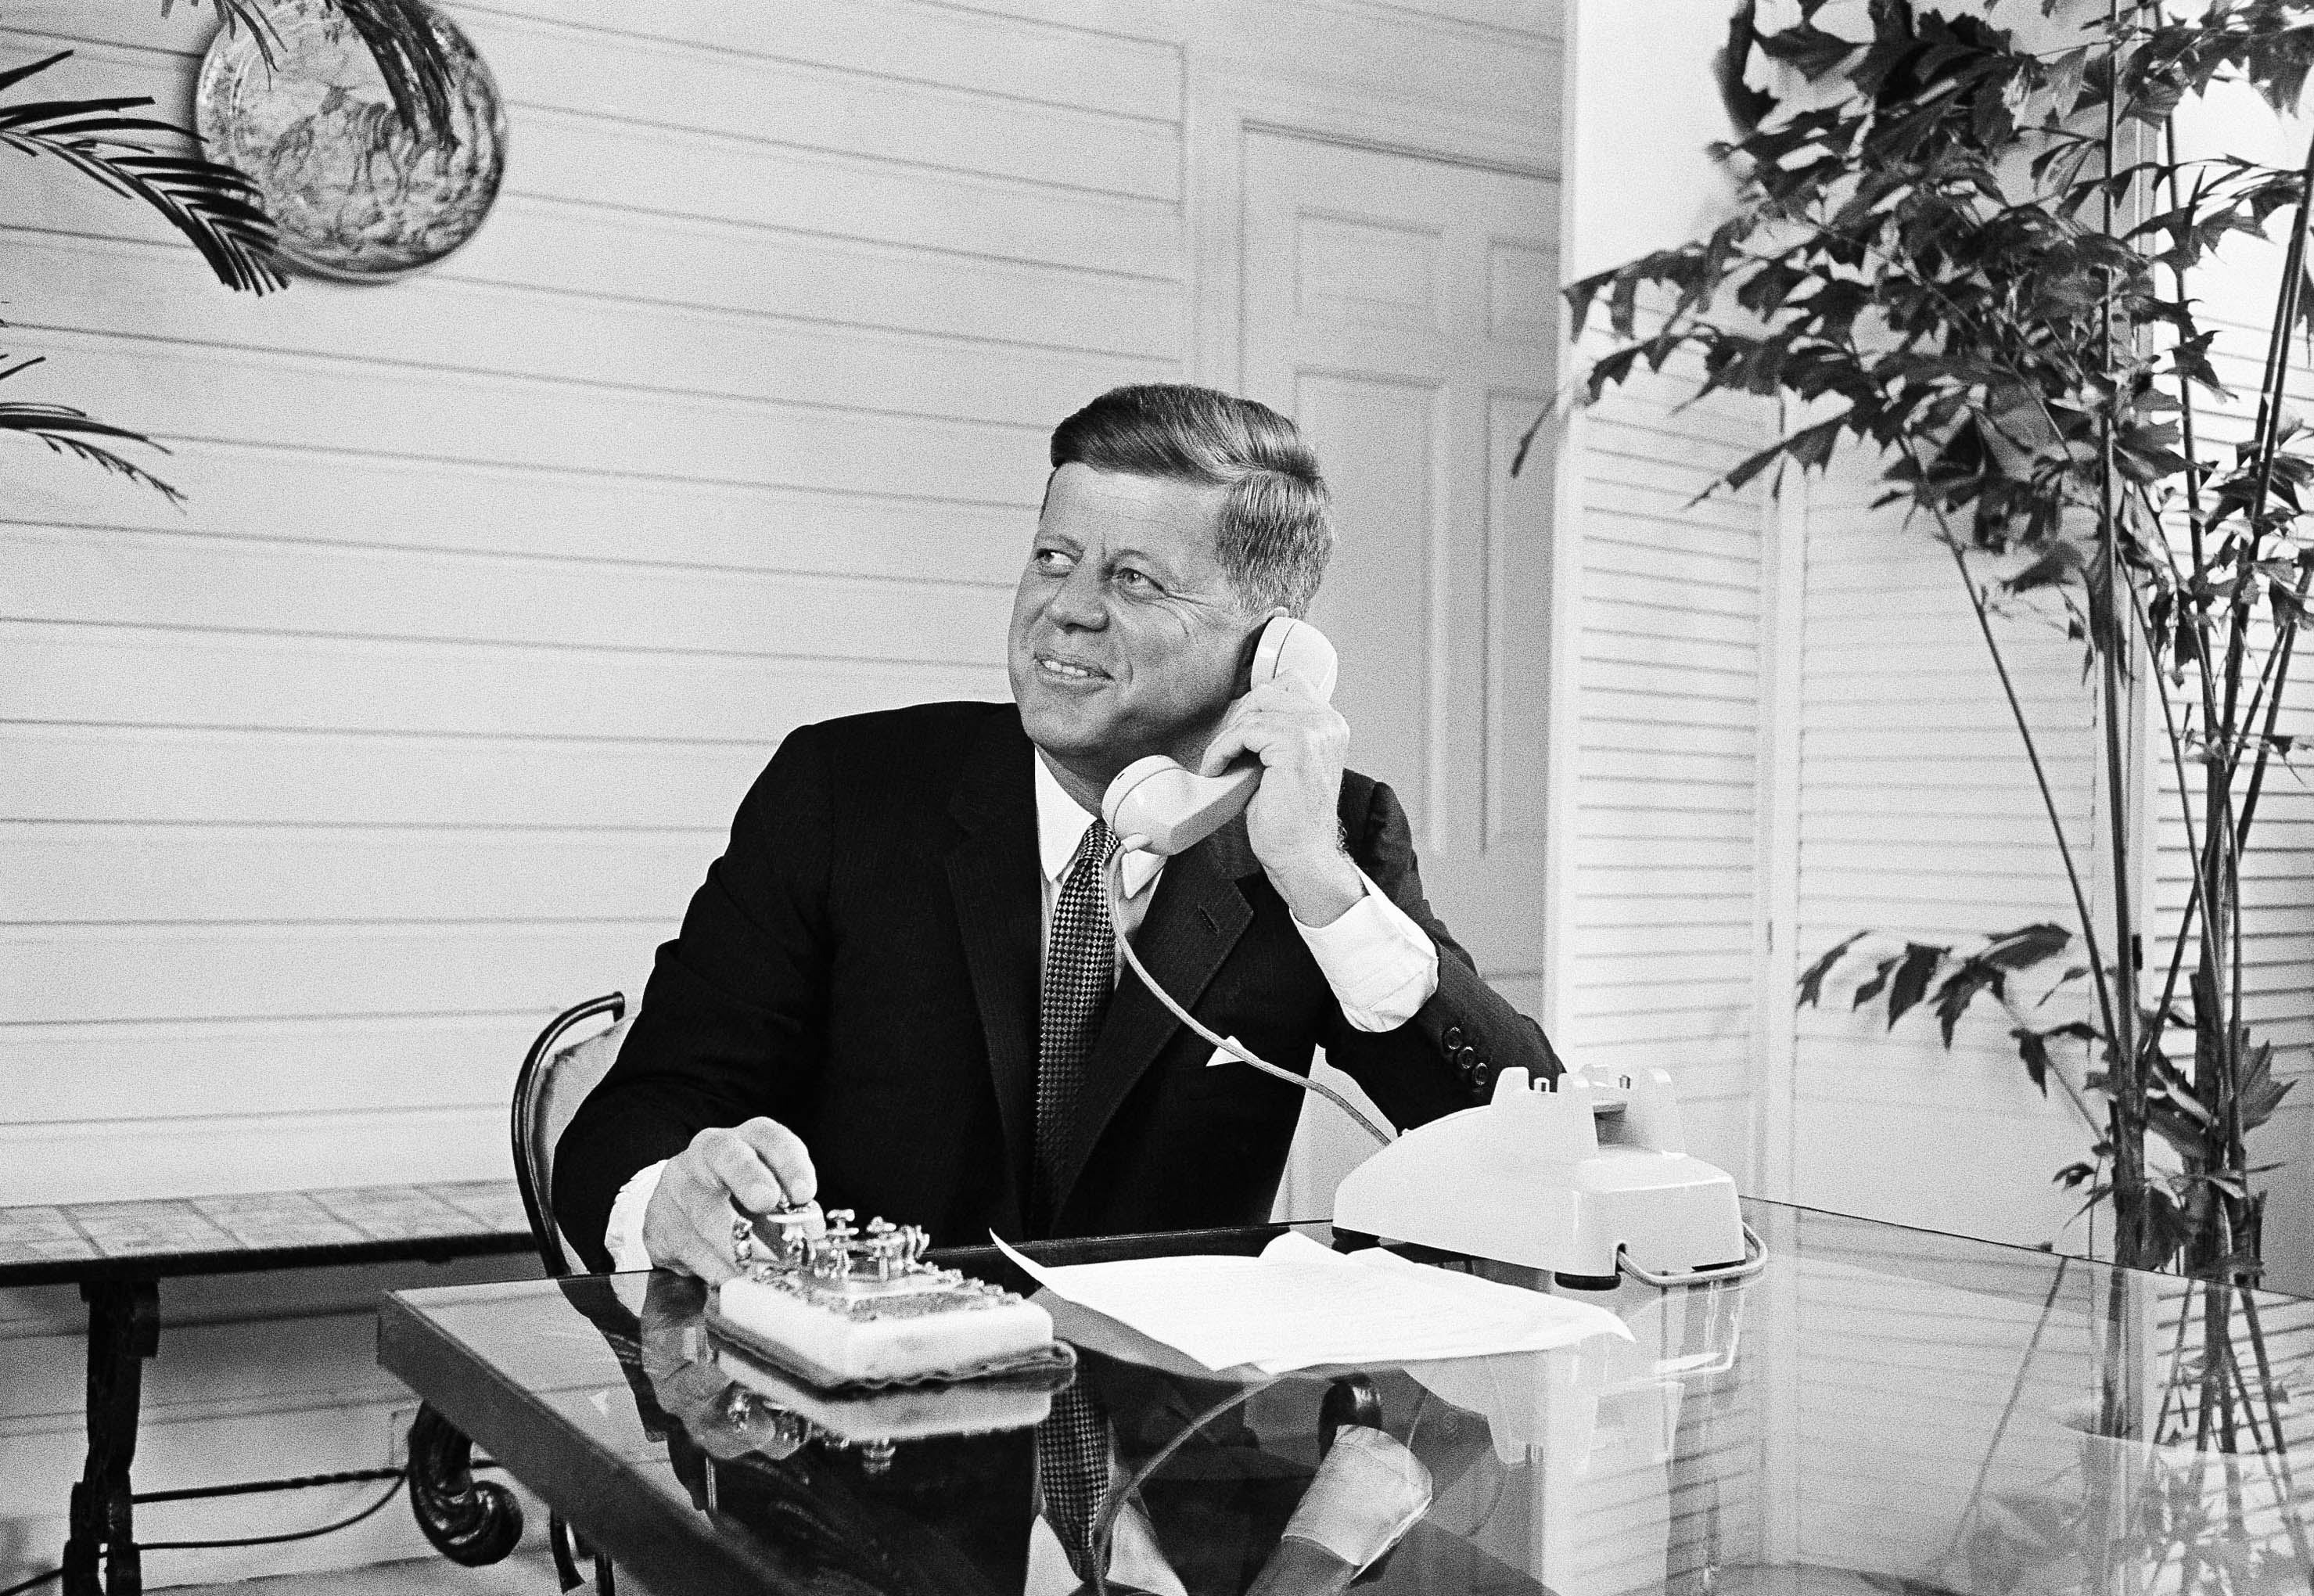 <div class='meta'><div class='origin-logo' data-origin='none'></div><span class='caption-text' data-credit='AP'>President Kennedy presses a gold telegraph key as he speaks over the telephone as part of the opening of the Seattle World's Fair in Palm Beach, Fla. on April 21, 1962.</span></div>